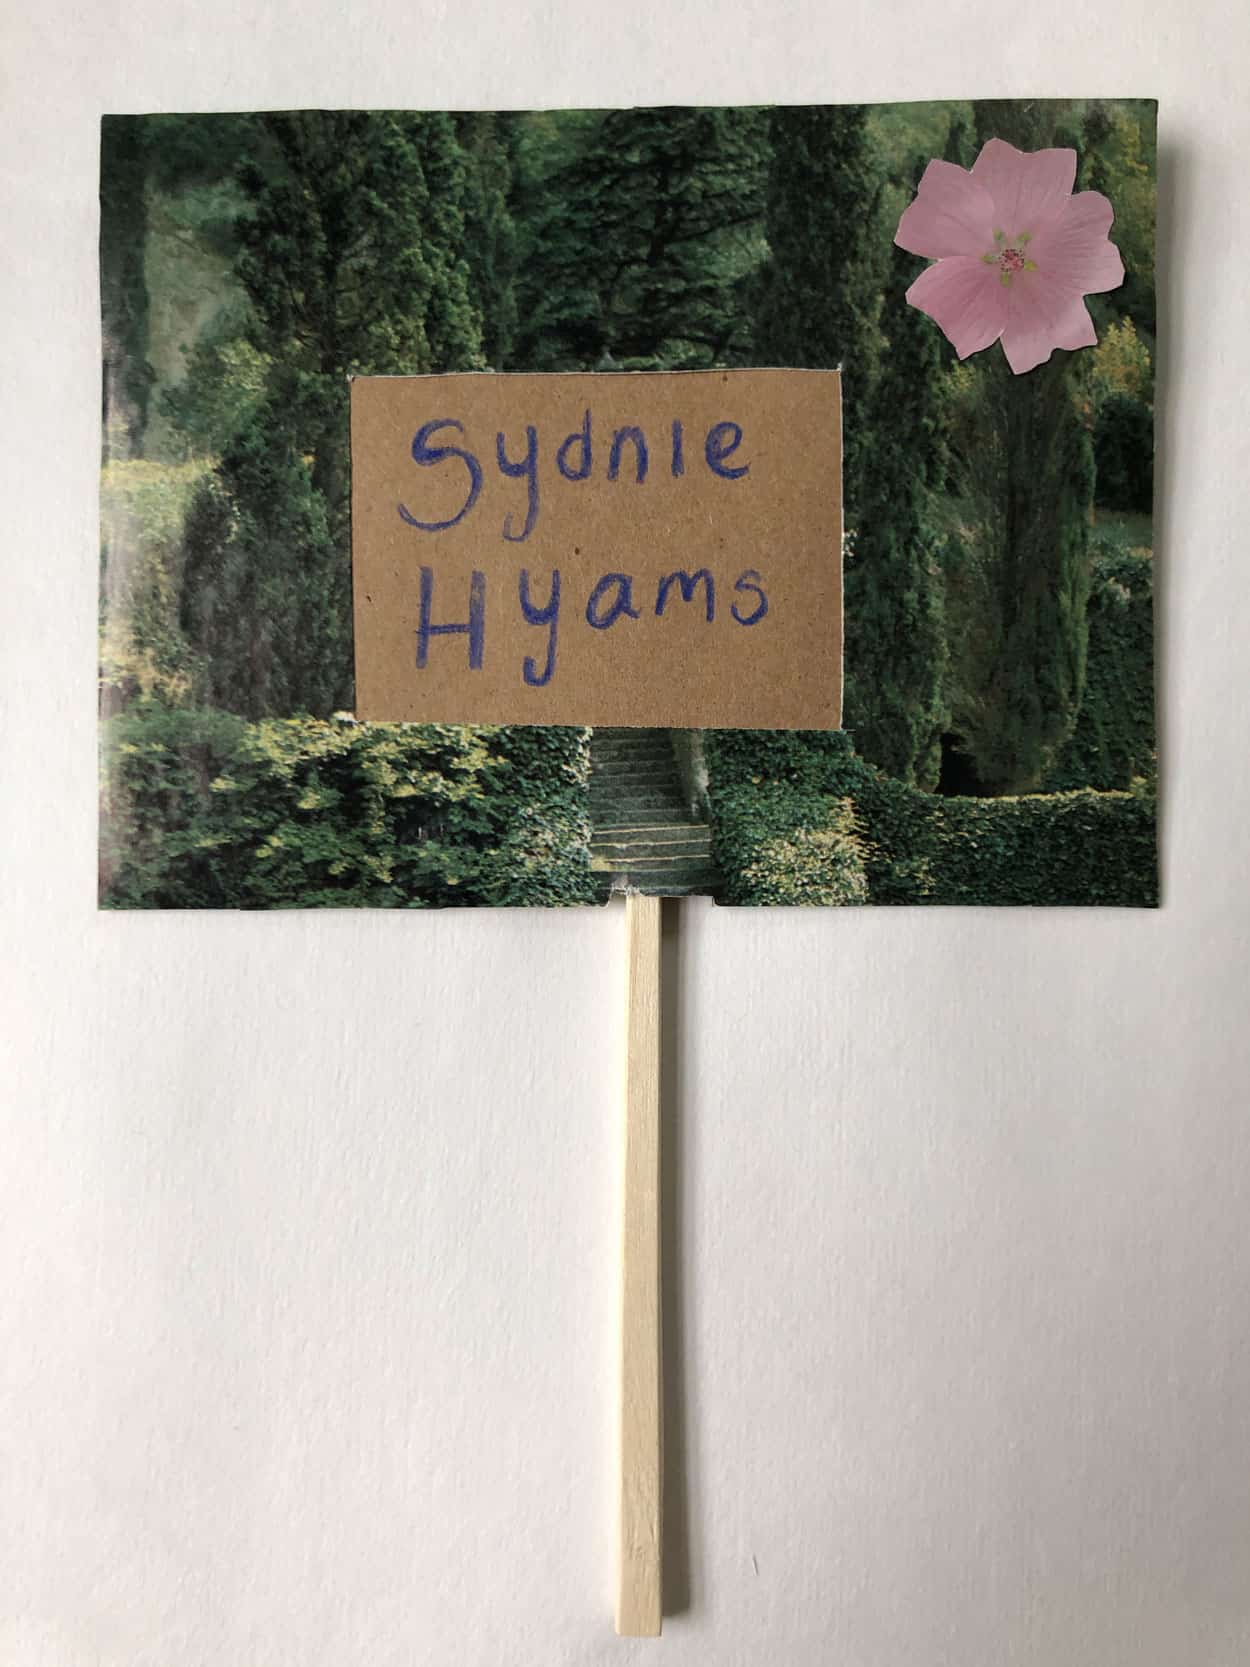 "and image of Hdeges and a stair case is covered by a brown cutout with the name ""Sydnie Hyams"" written on it. There is a pink flower in the top right corner"